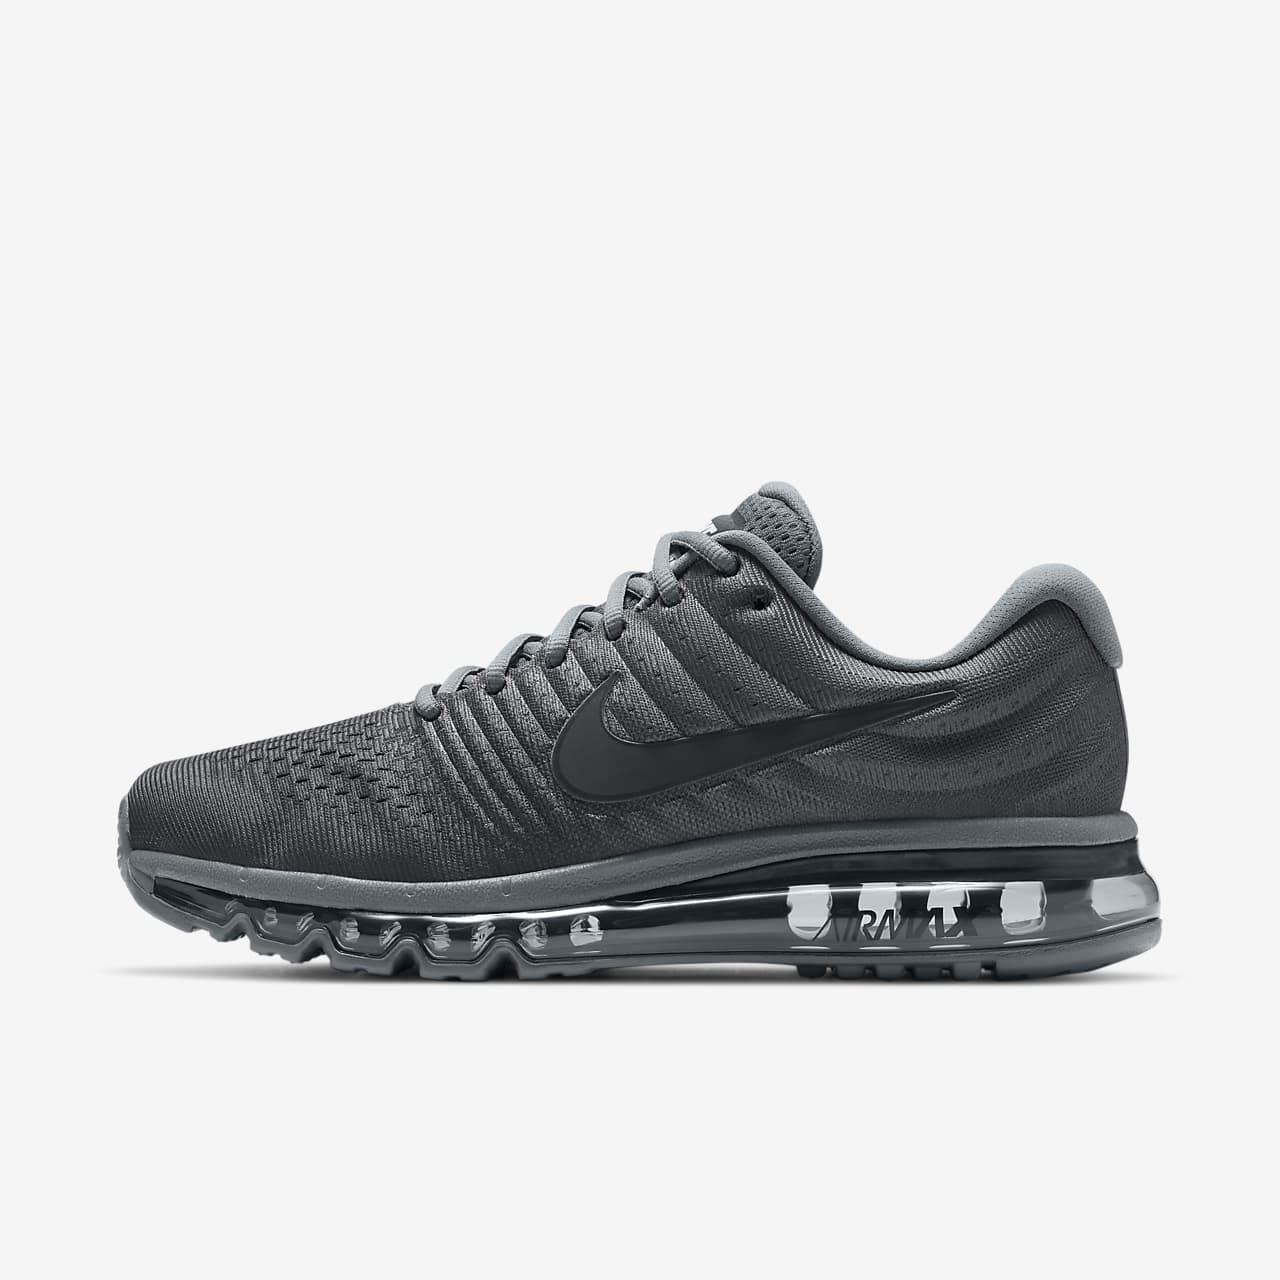 4bc0d3c62d13d Nike Air Max 2017 Men s Shoe. Nike.com